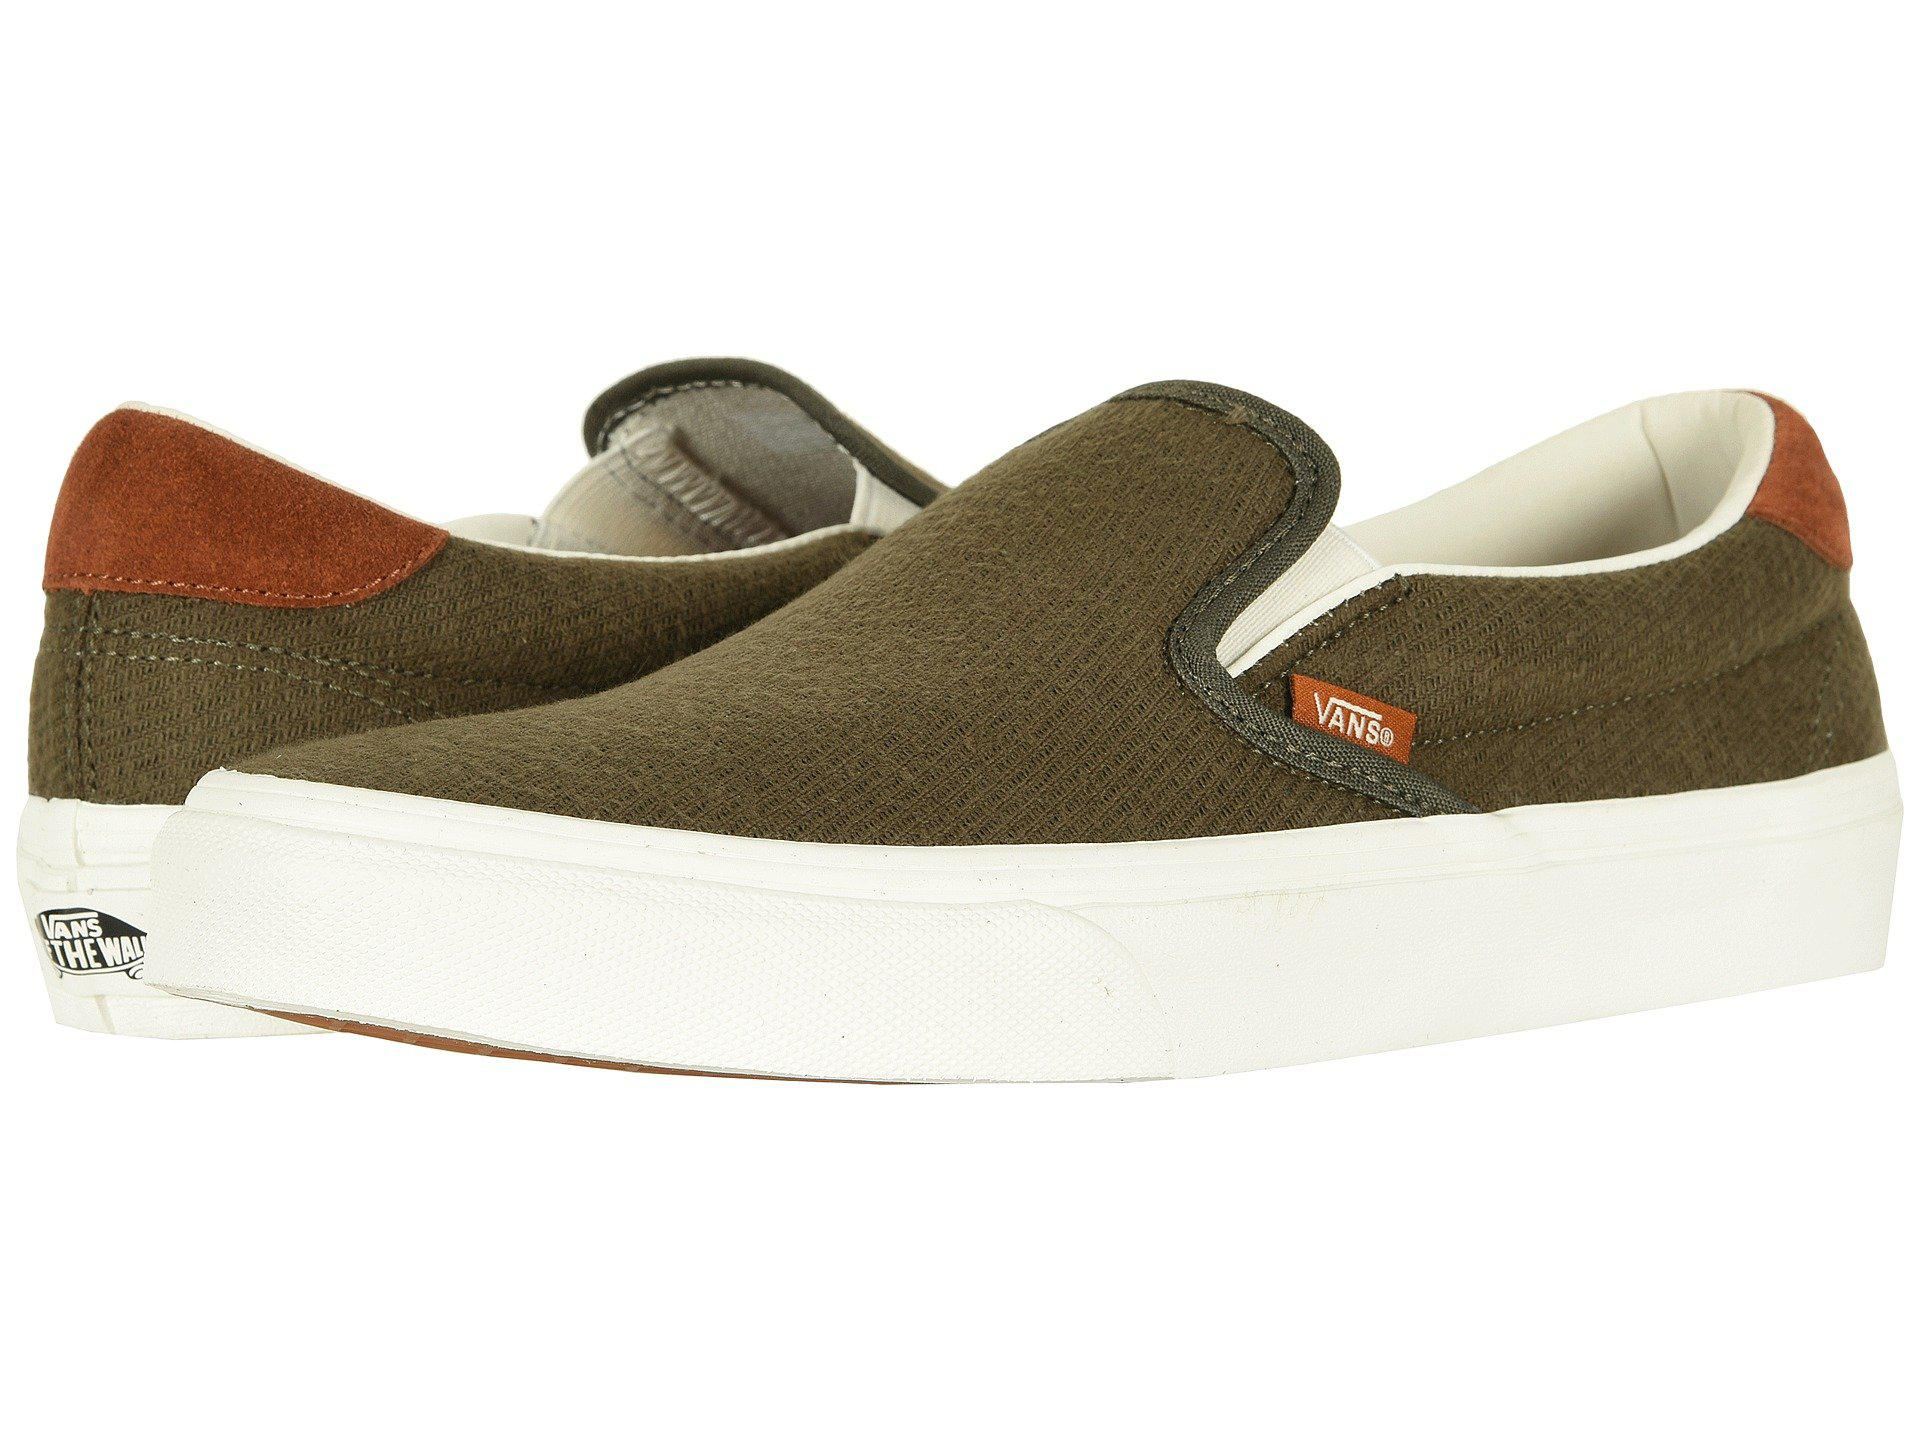 d5451634711f Lyst - Vans Slip-on 59 ((flannel) Dusty Olive) Skate Shoes in Green ...